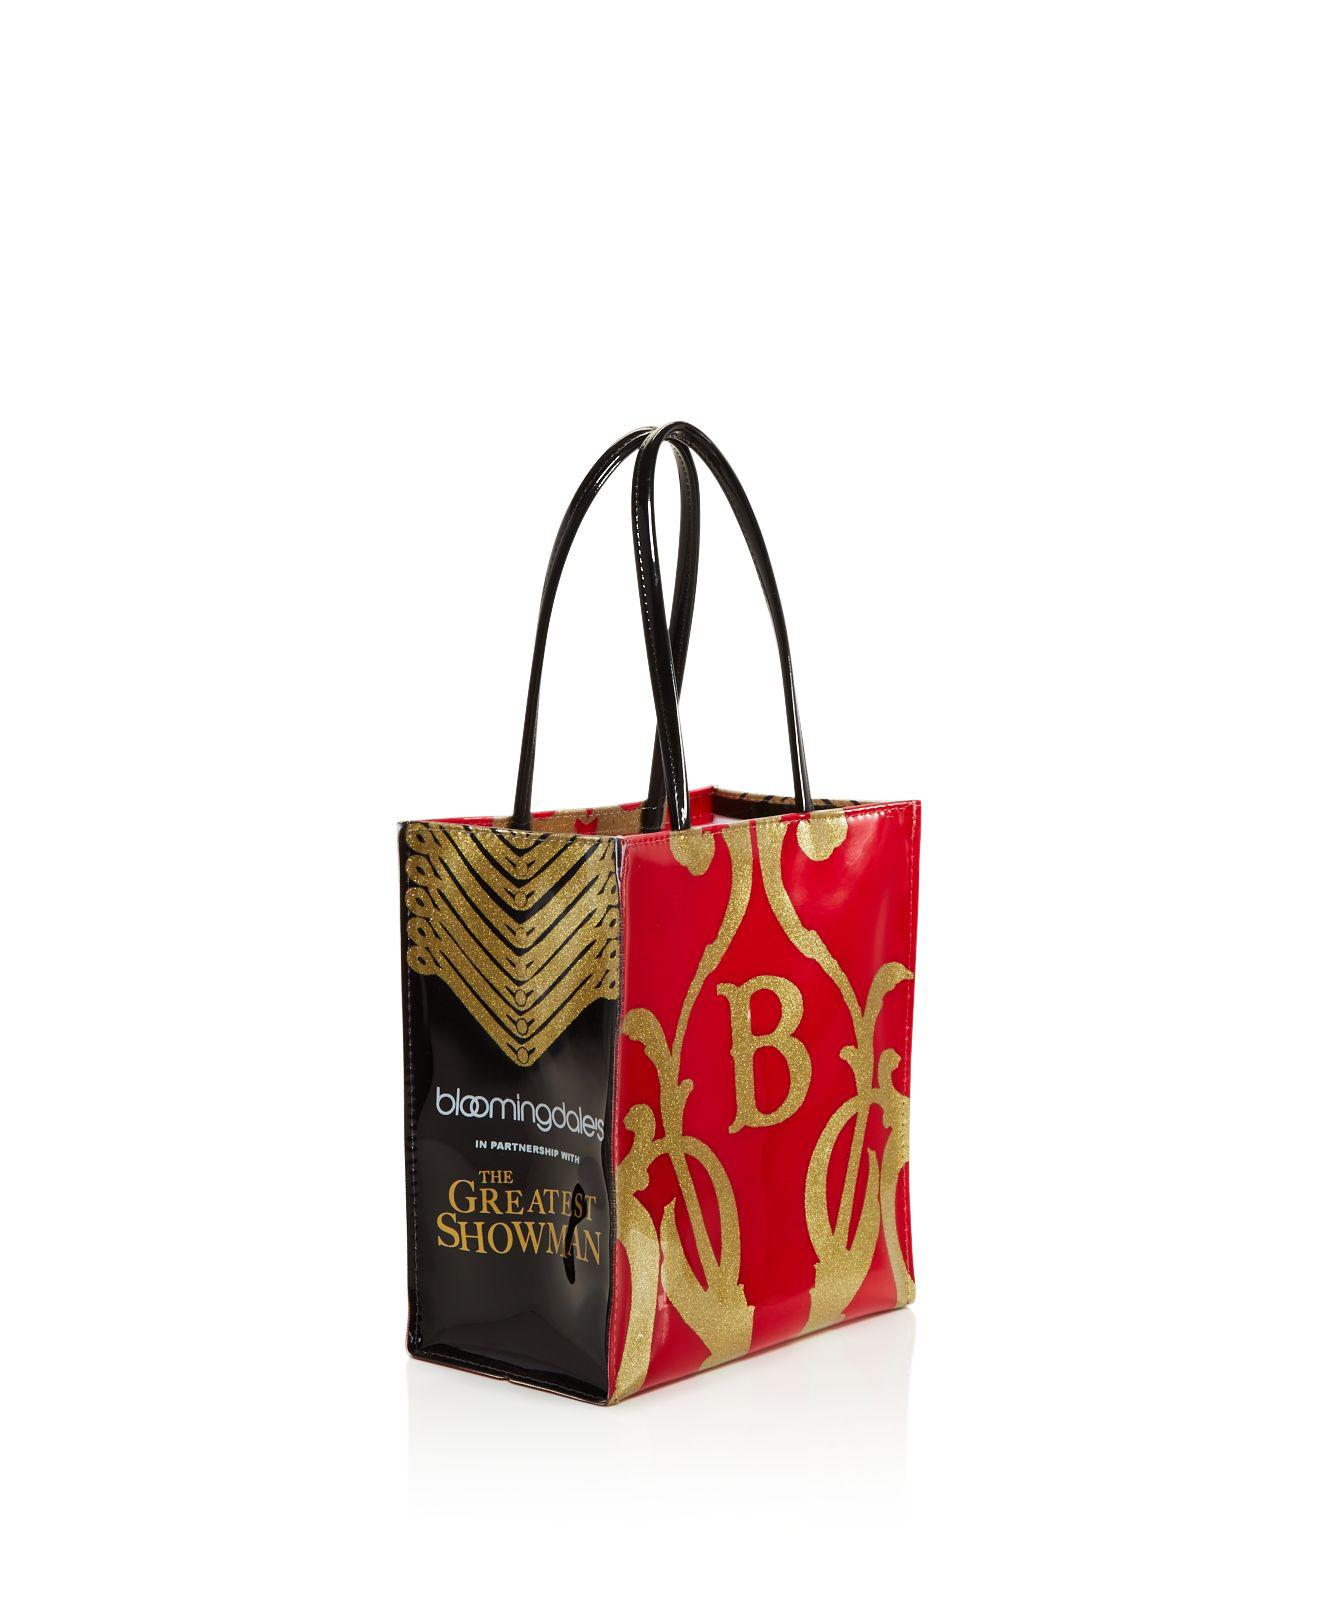 ... retailer f0546 4e3ca Lyst - BloomingdaleS The Greatest Showman Glitter  B Little B  buy popular 789e8 2a527 BloomingdaleS Little Brown Bag Lunch  Tote ... c026807e89